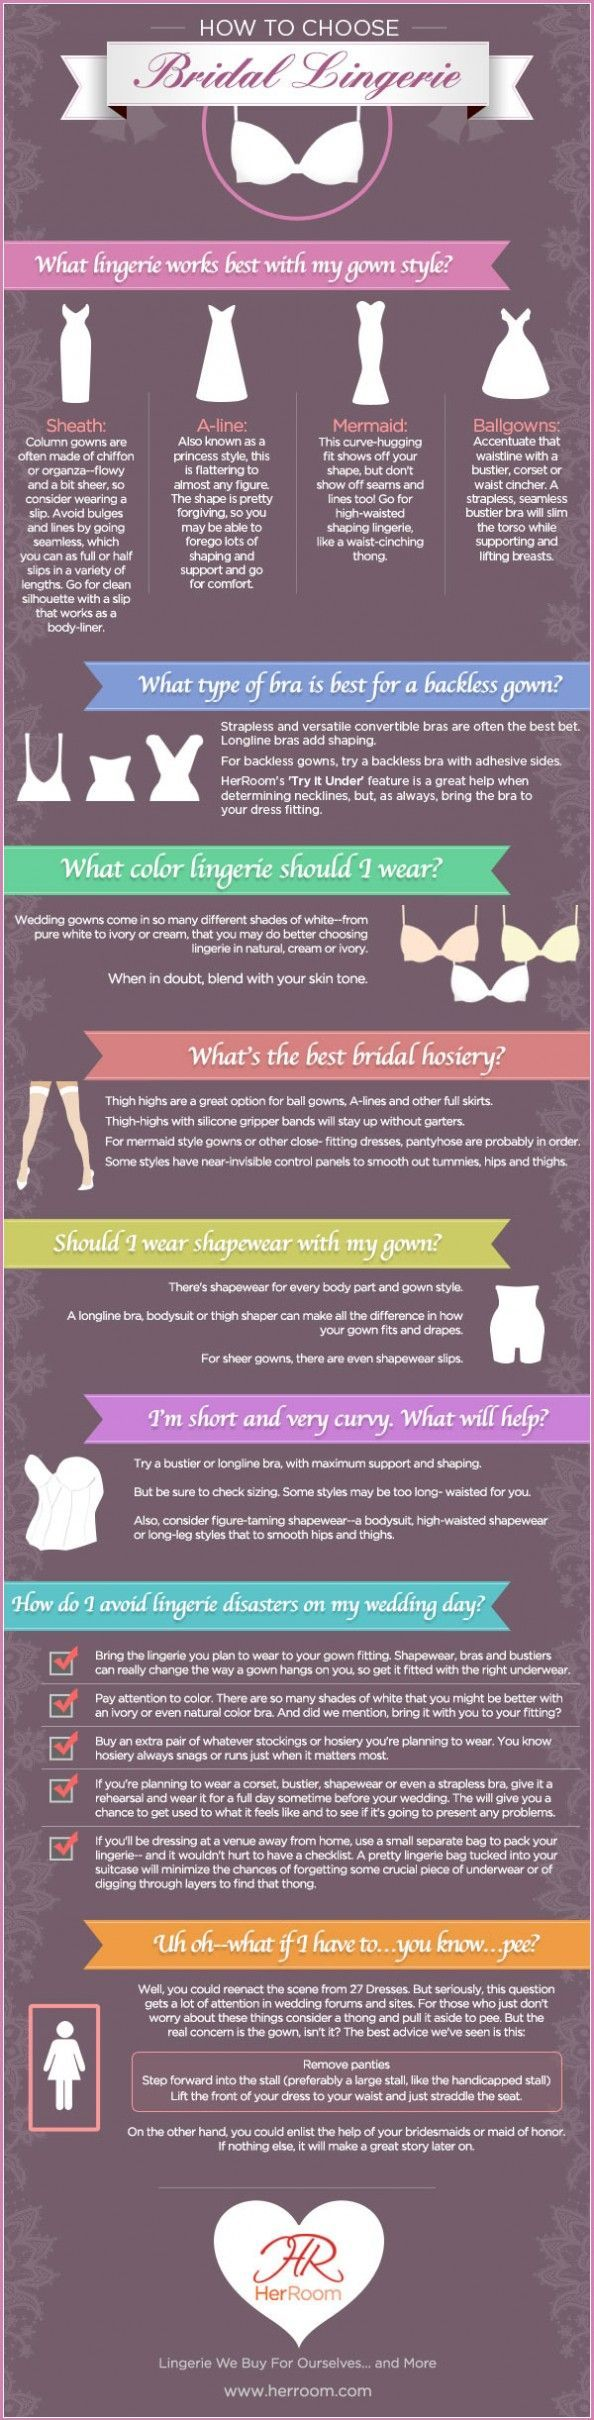 How To Choose Bridal Lingerie Infographic -- I'm going to have to wear a diaper during my wedding. -_-